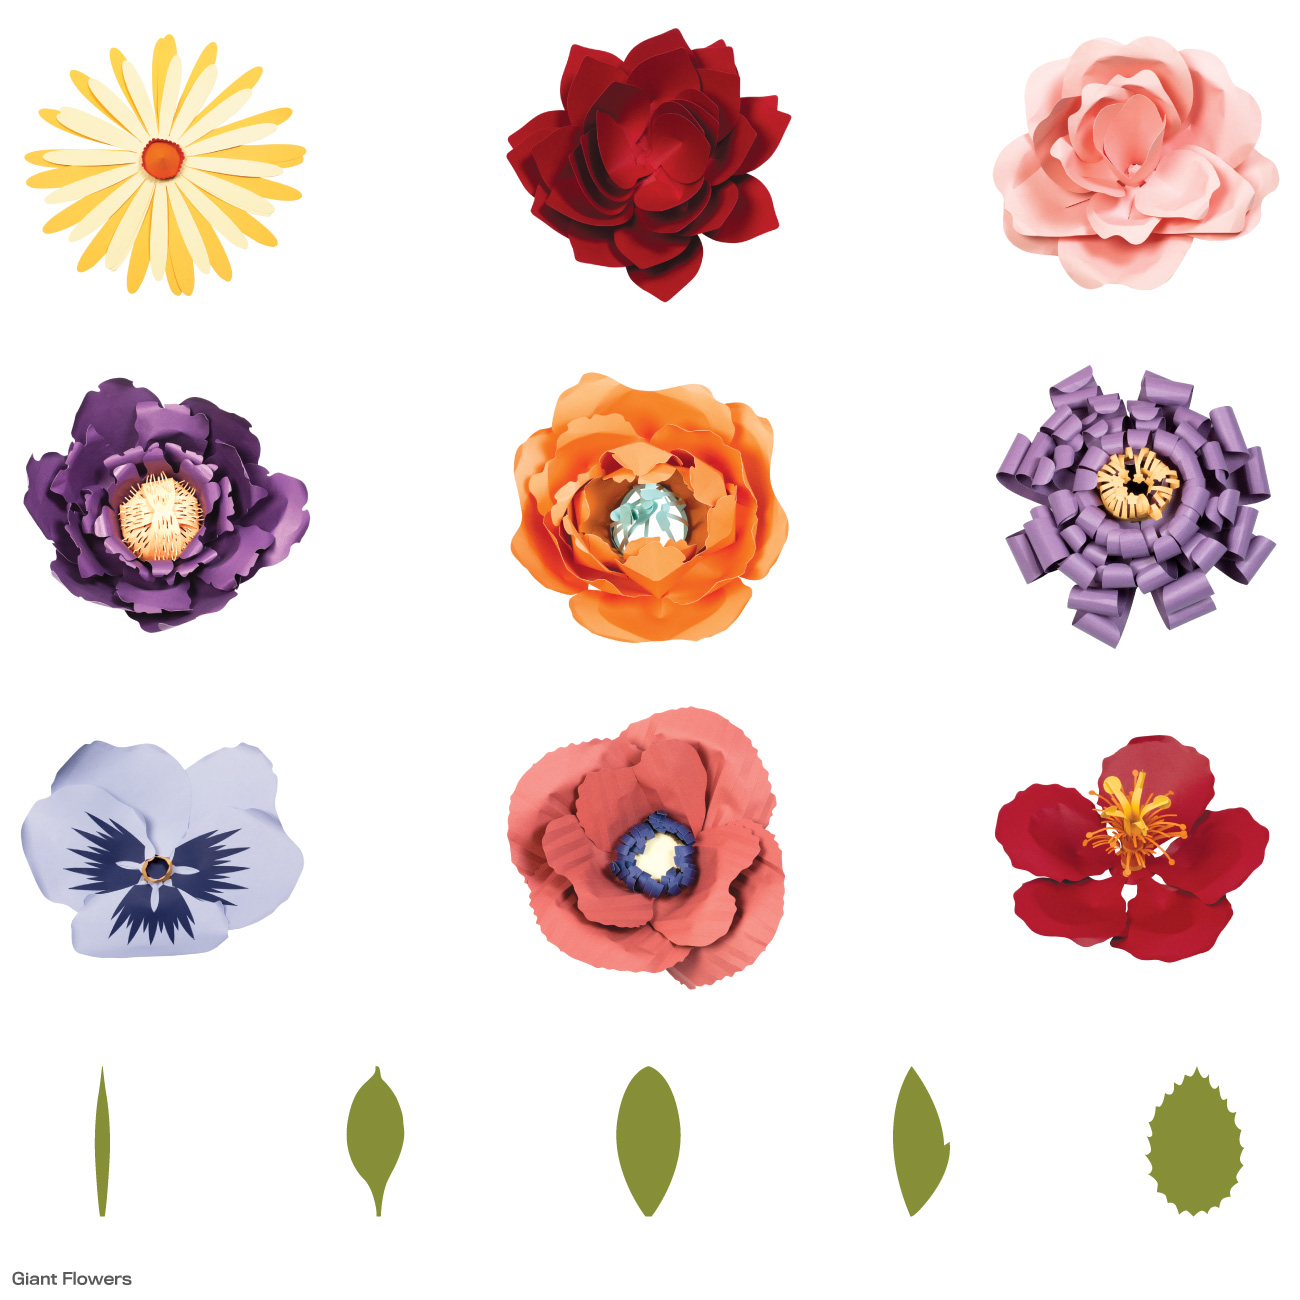 Petal clipart giant flower  jpg giantflowers_base